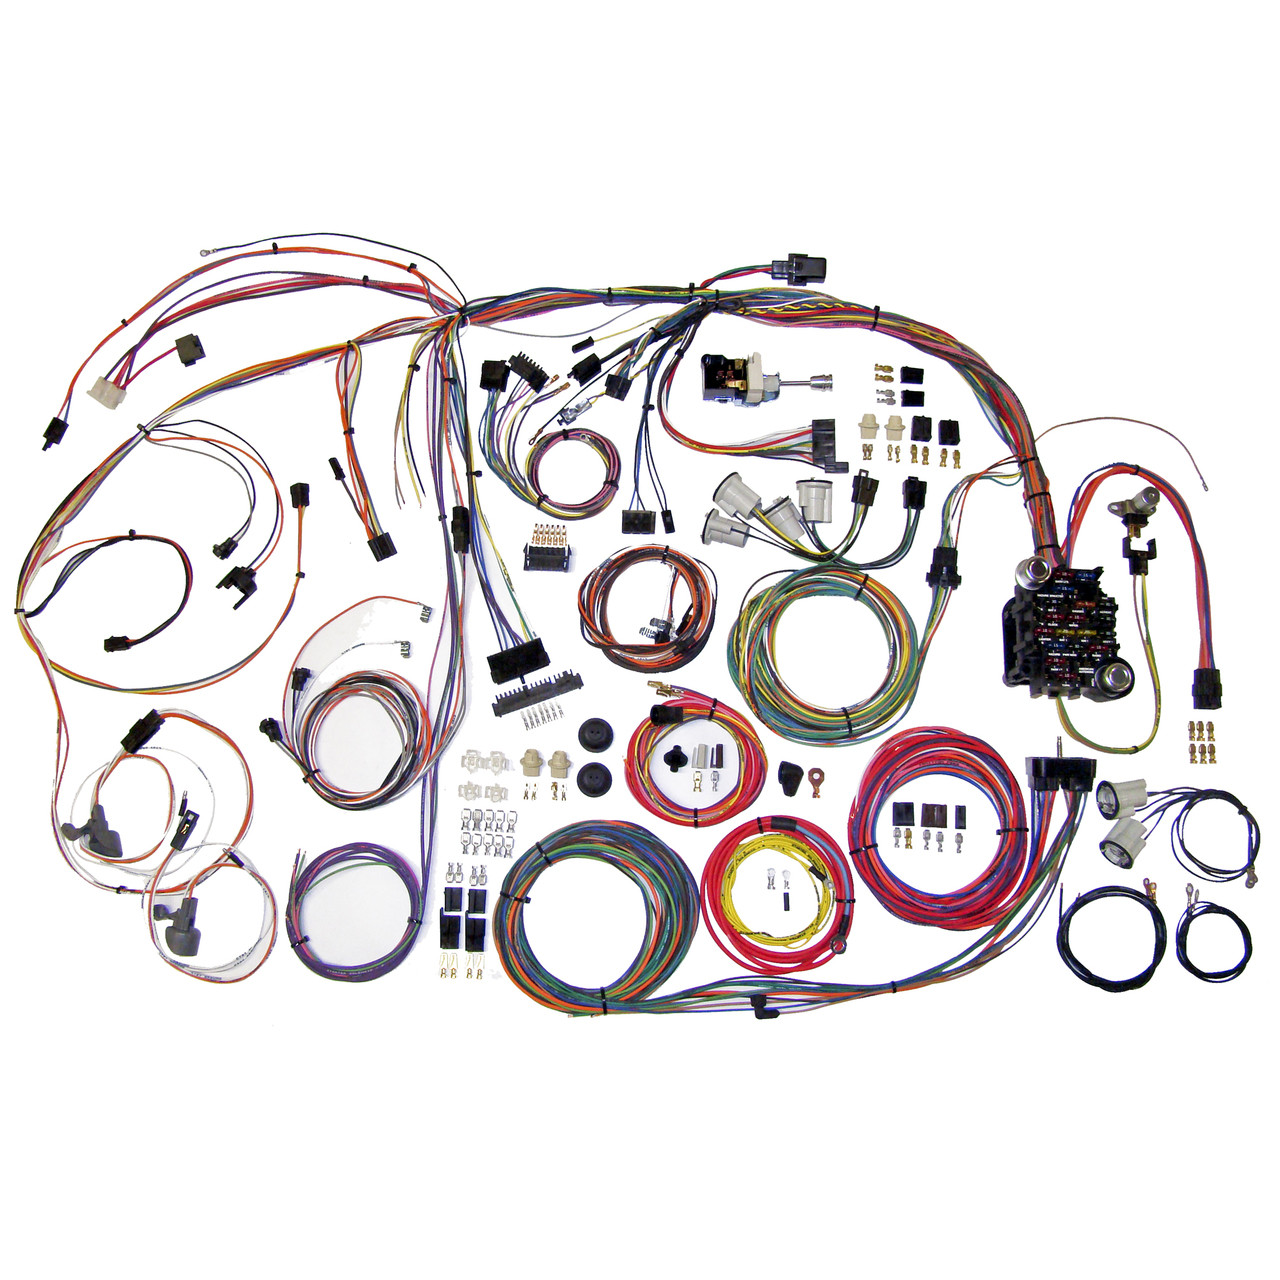 72 Chevelle Hei Distributor Wiring Diagram. Spark Plug Wire Routing on neutral safety switch diagram, hei wiring install, hei coil, alternator diagram, horn relay diagram, hei wiring circuit, hei conversion wiring, gm distributor diagram, fuel gauge diagram, hei ignition, hei plug diagram, gm hei diagram, hei distributor, hei module wiring, hei parts diagram,